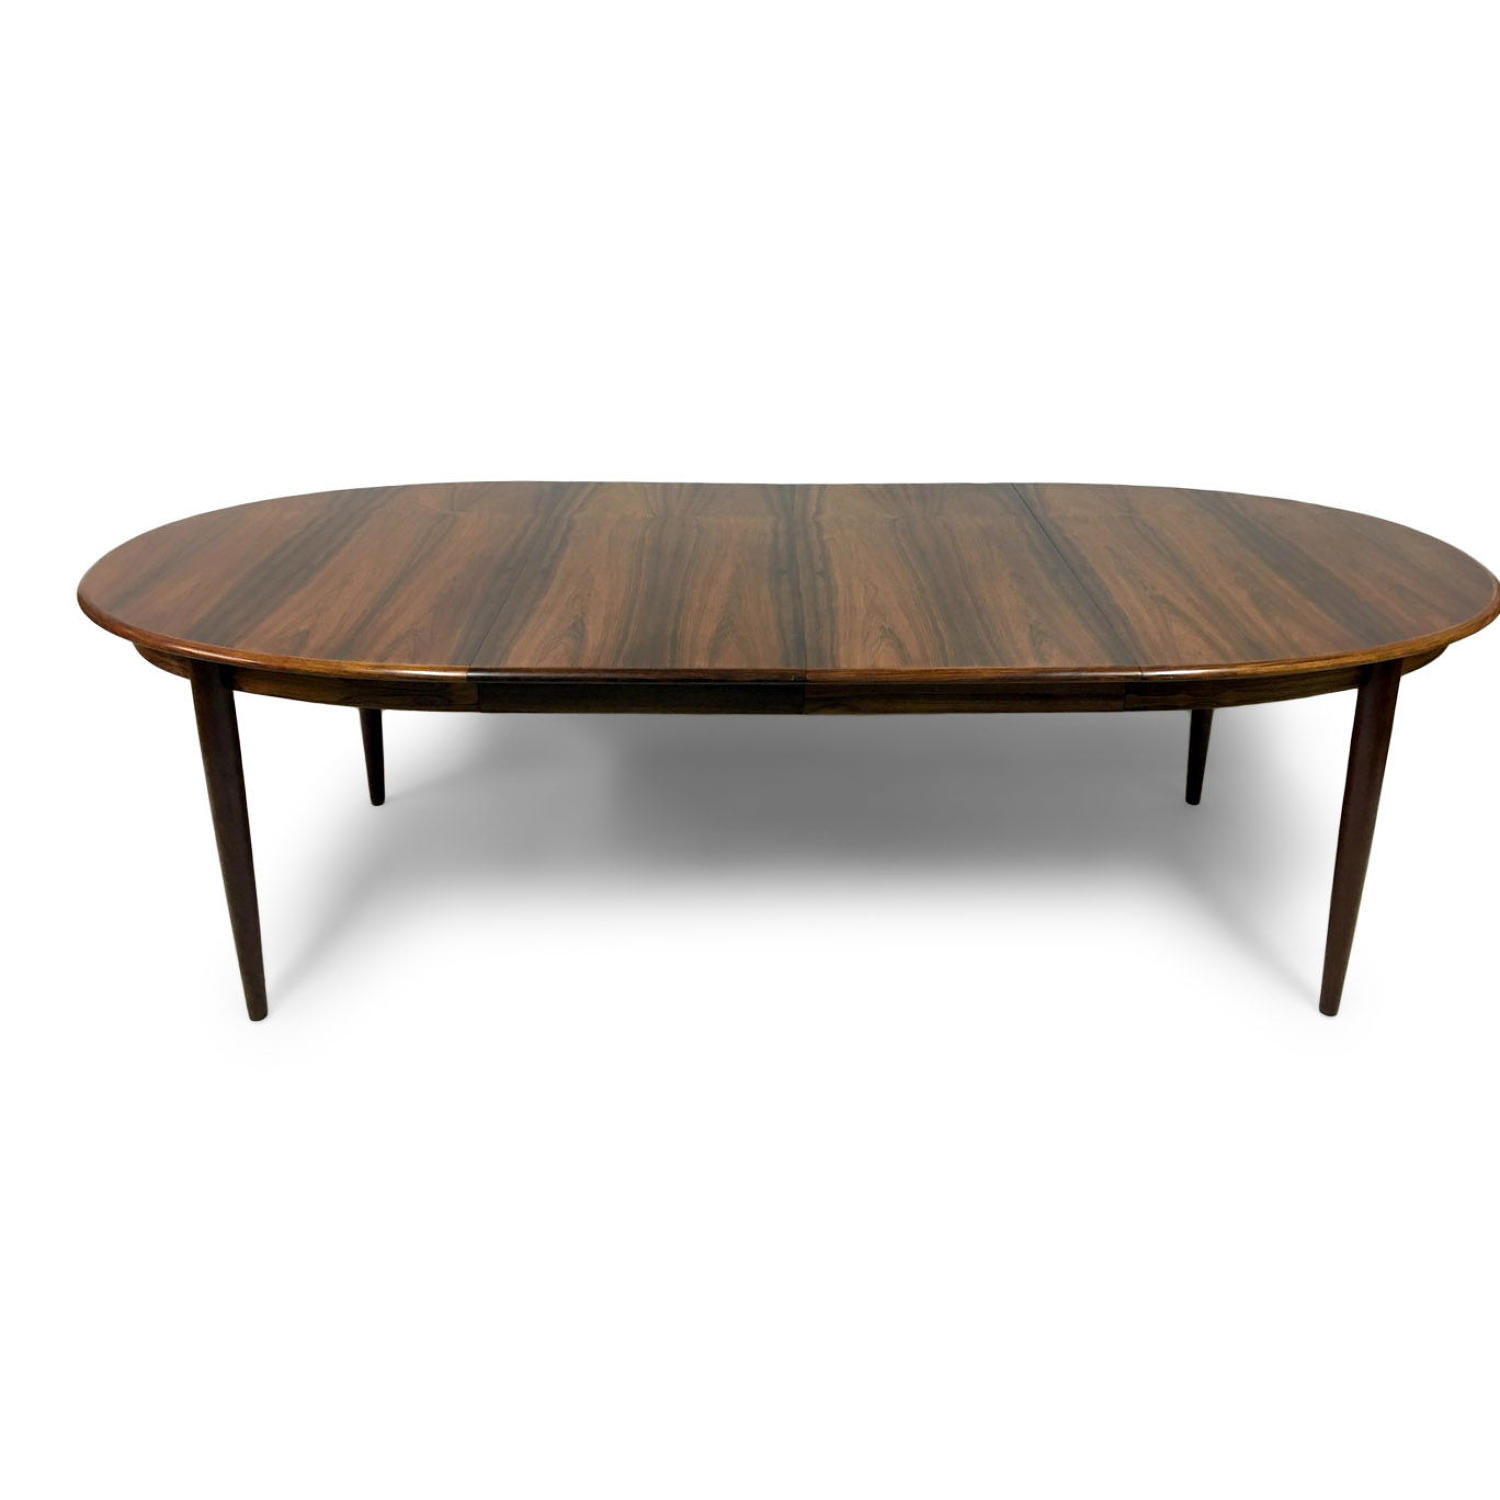 1960s Danish rosewood dining table by Gudme Mobelfabrik